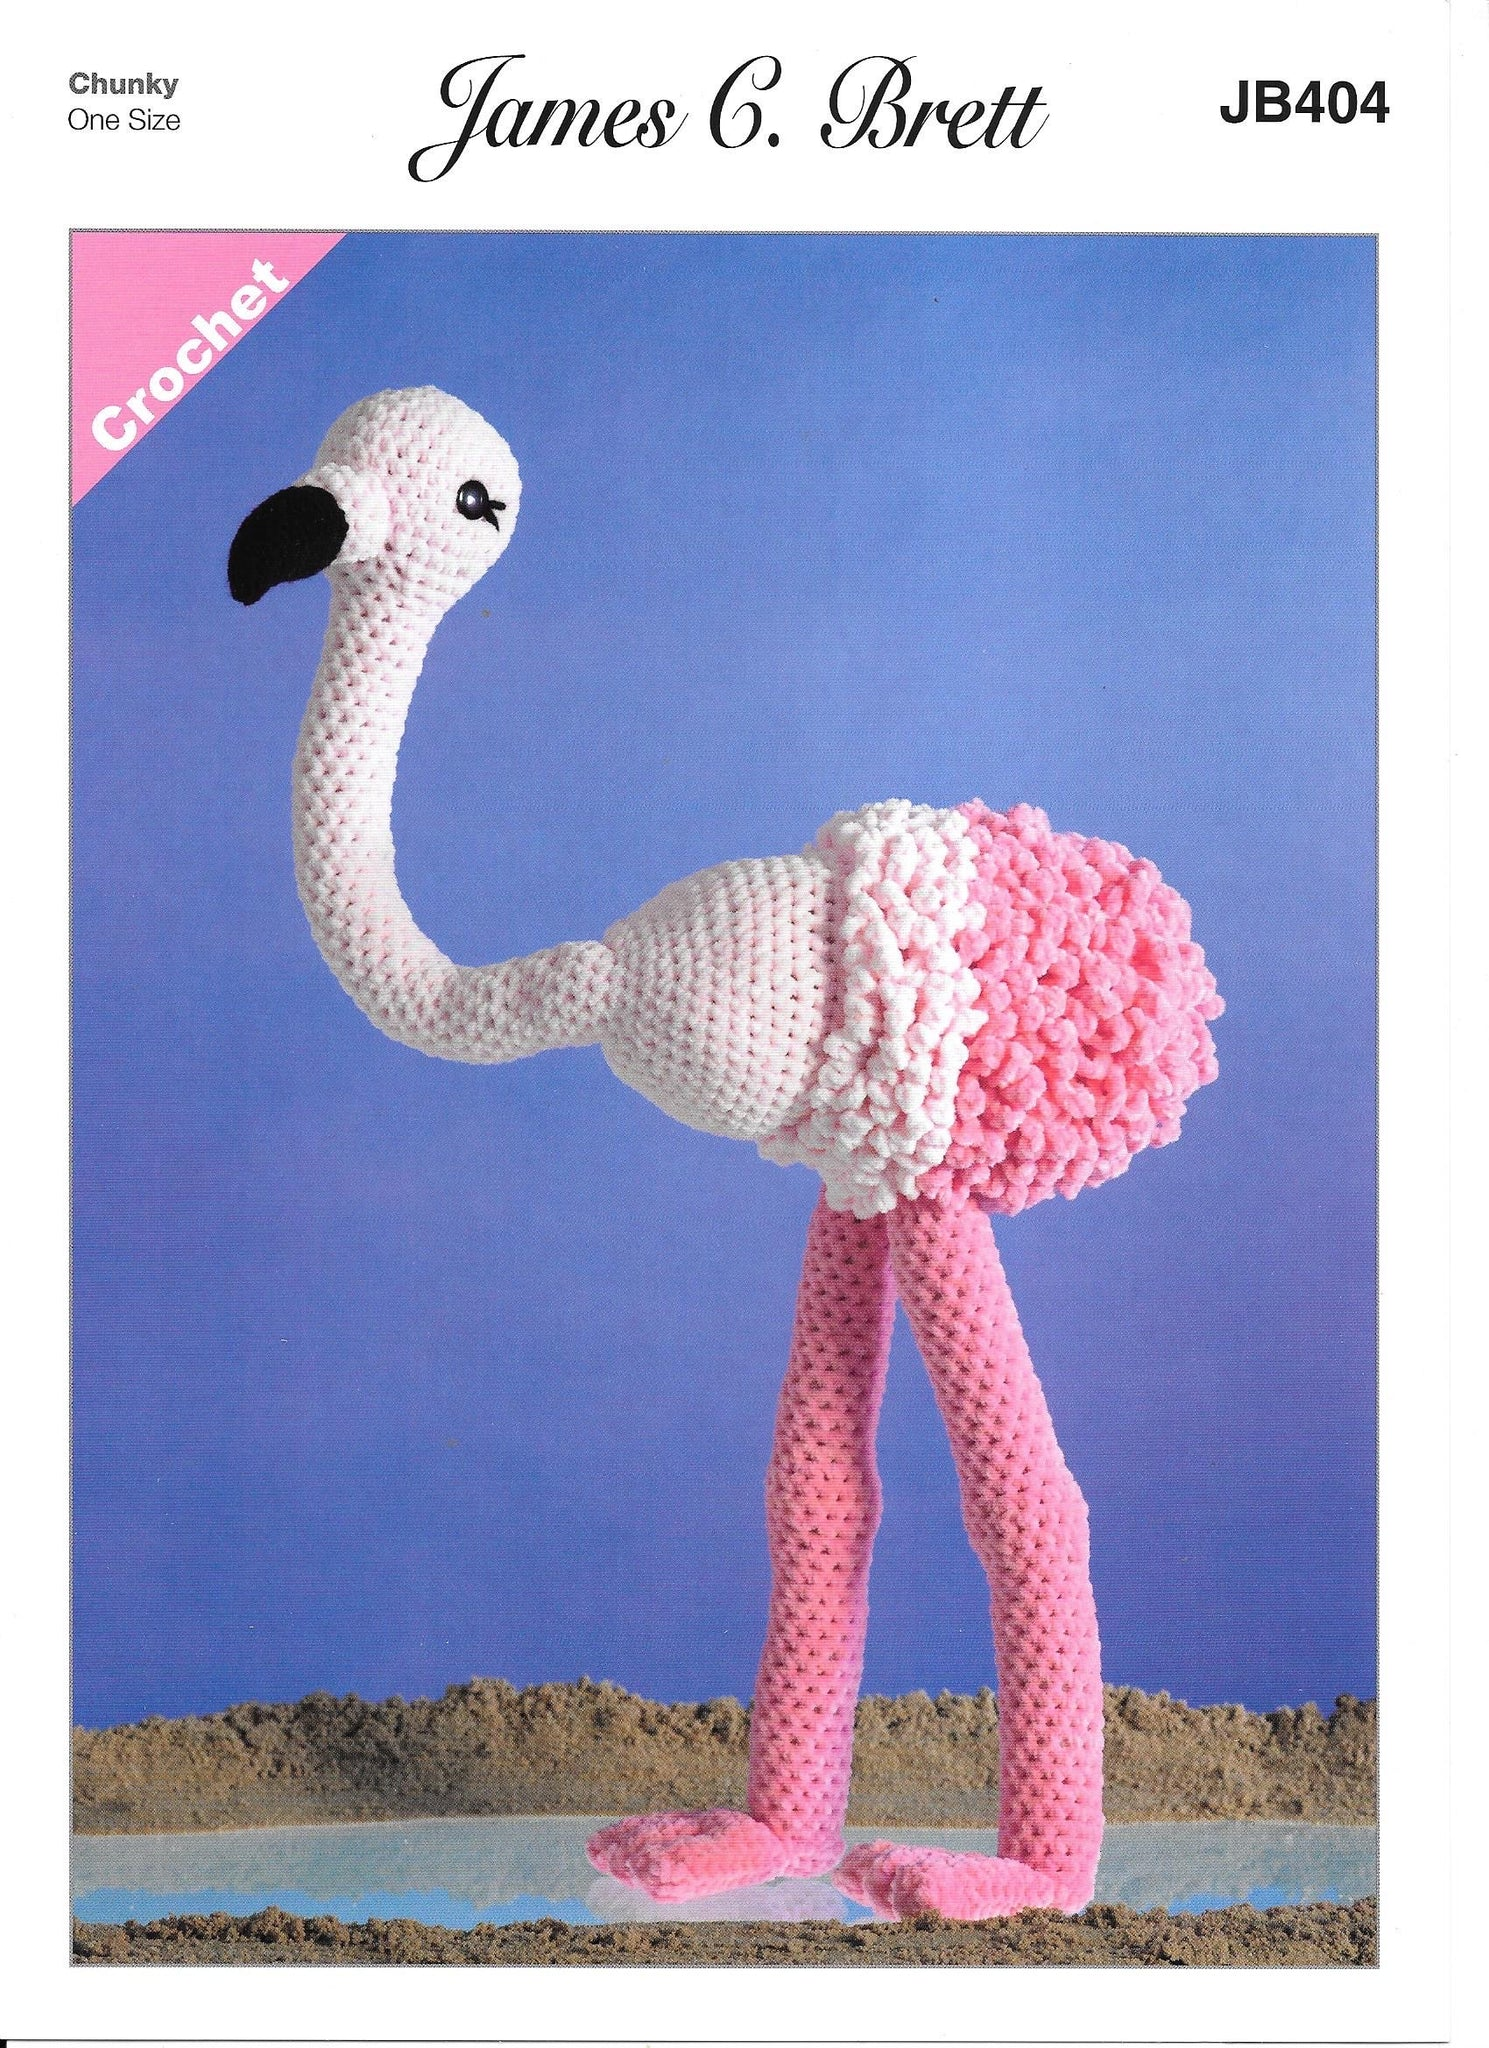 404 JB404 James C Brett Flutterby toy flamingo crochet pattern